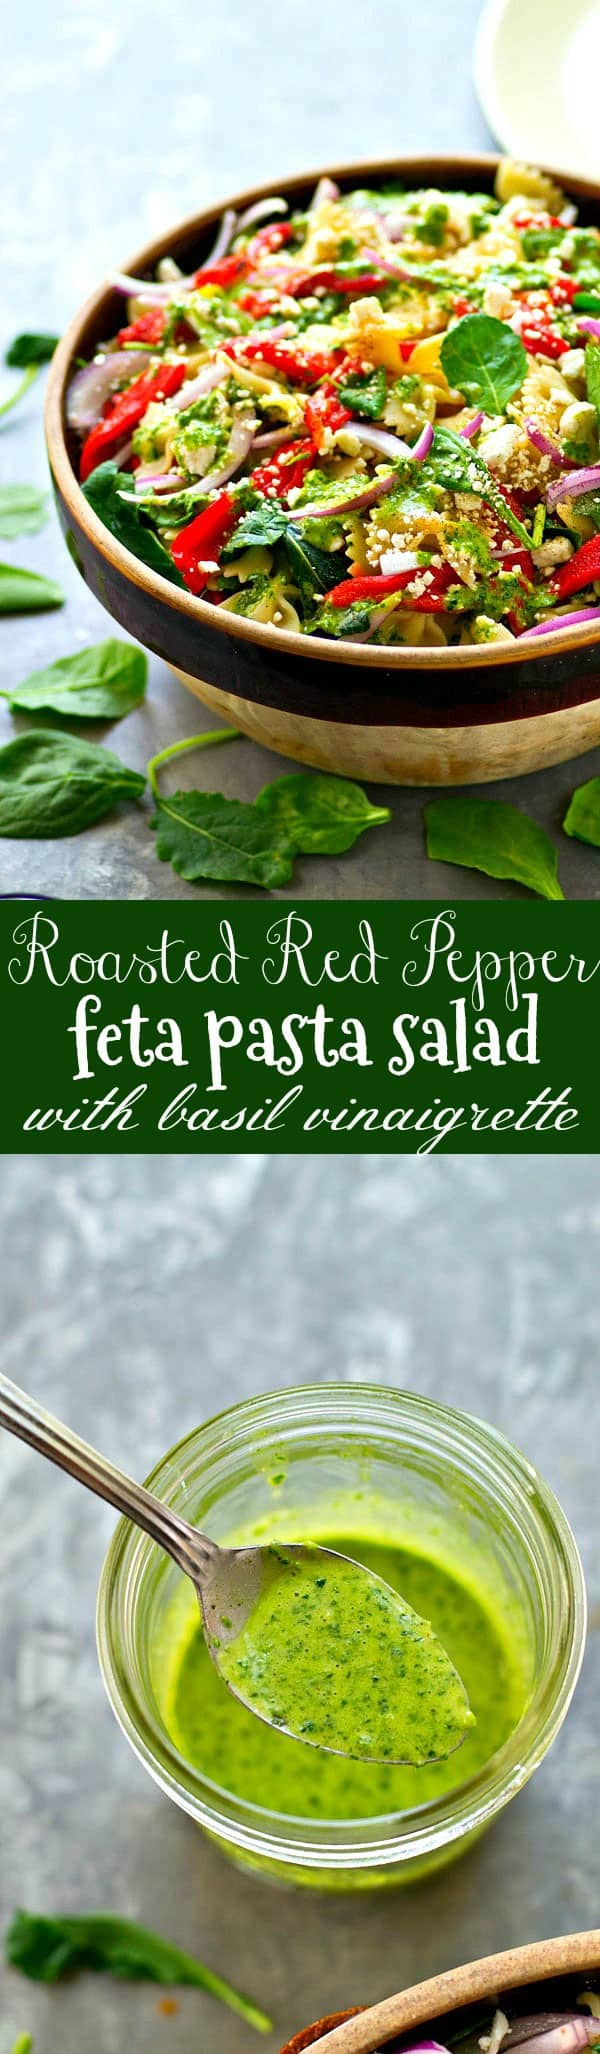 Flavorful roasted red peppers and feta are tossed with a fresh basil vinaigrette to create this gorgeous roasted red pepper feta pasta salad perfect for any spring or summer gathering!